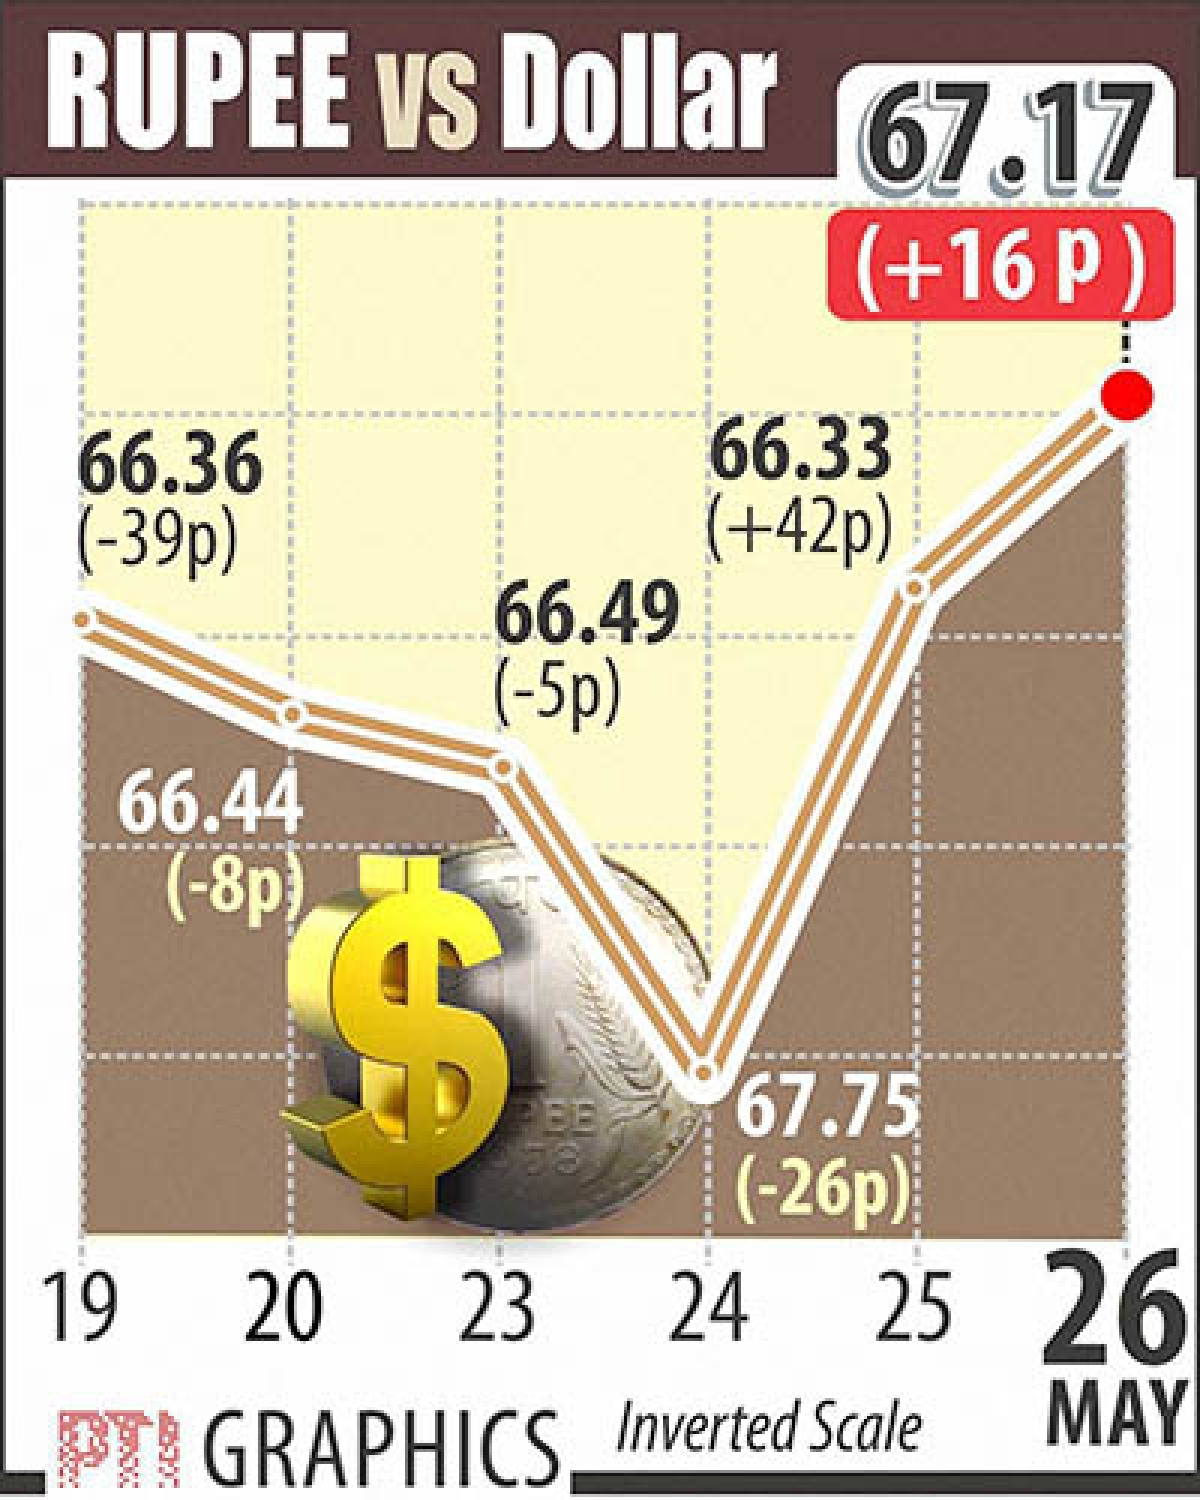 Re continues to rise, gains 16 ps to 67.17